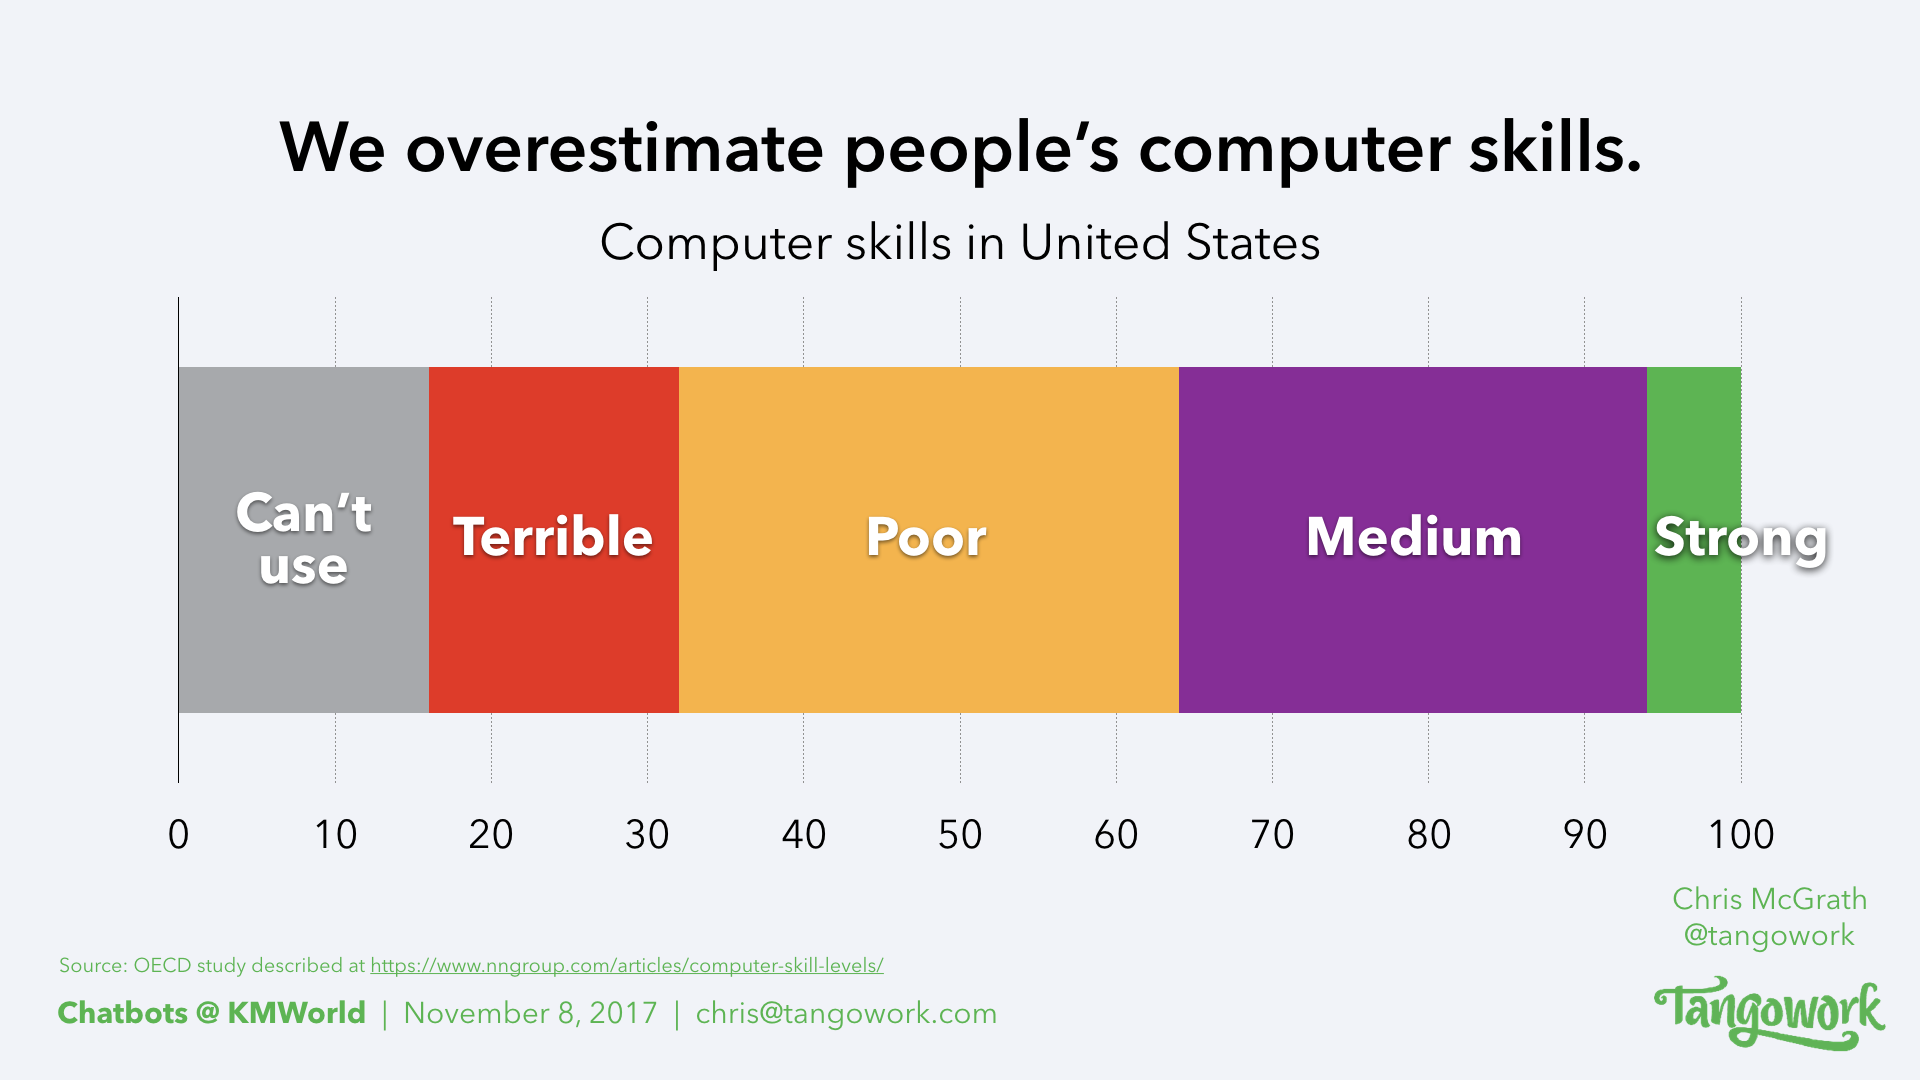 Chart showing how we overestimate people's computer skills